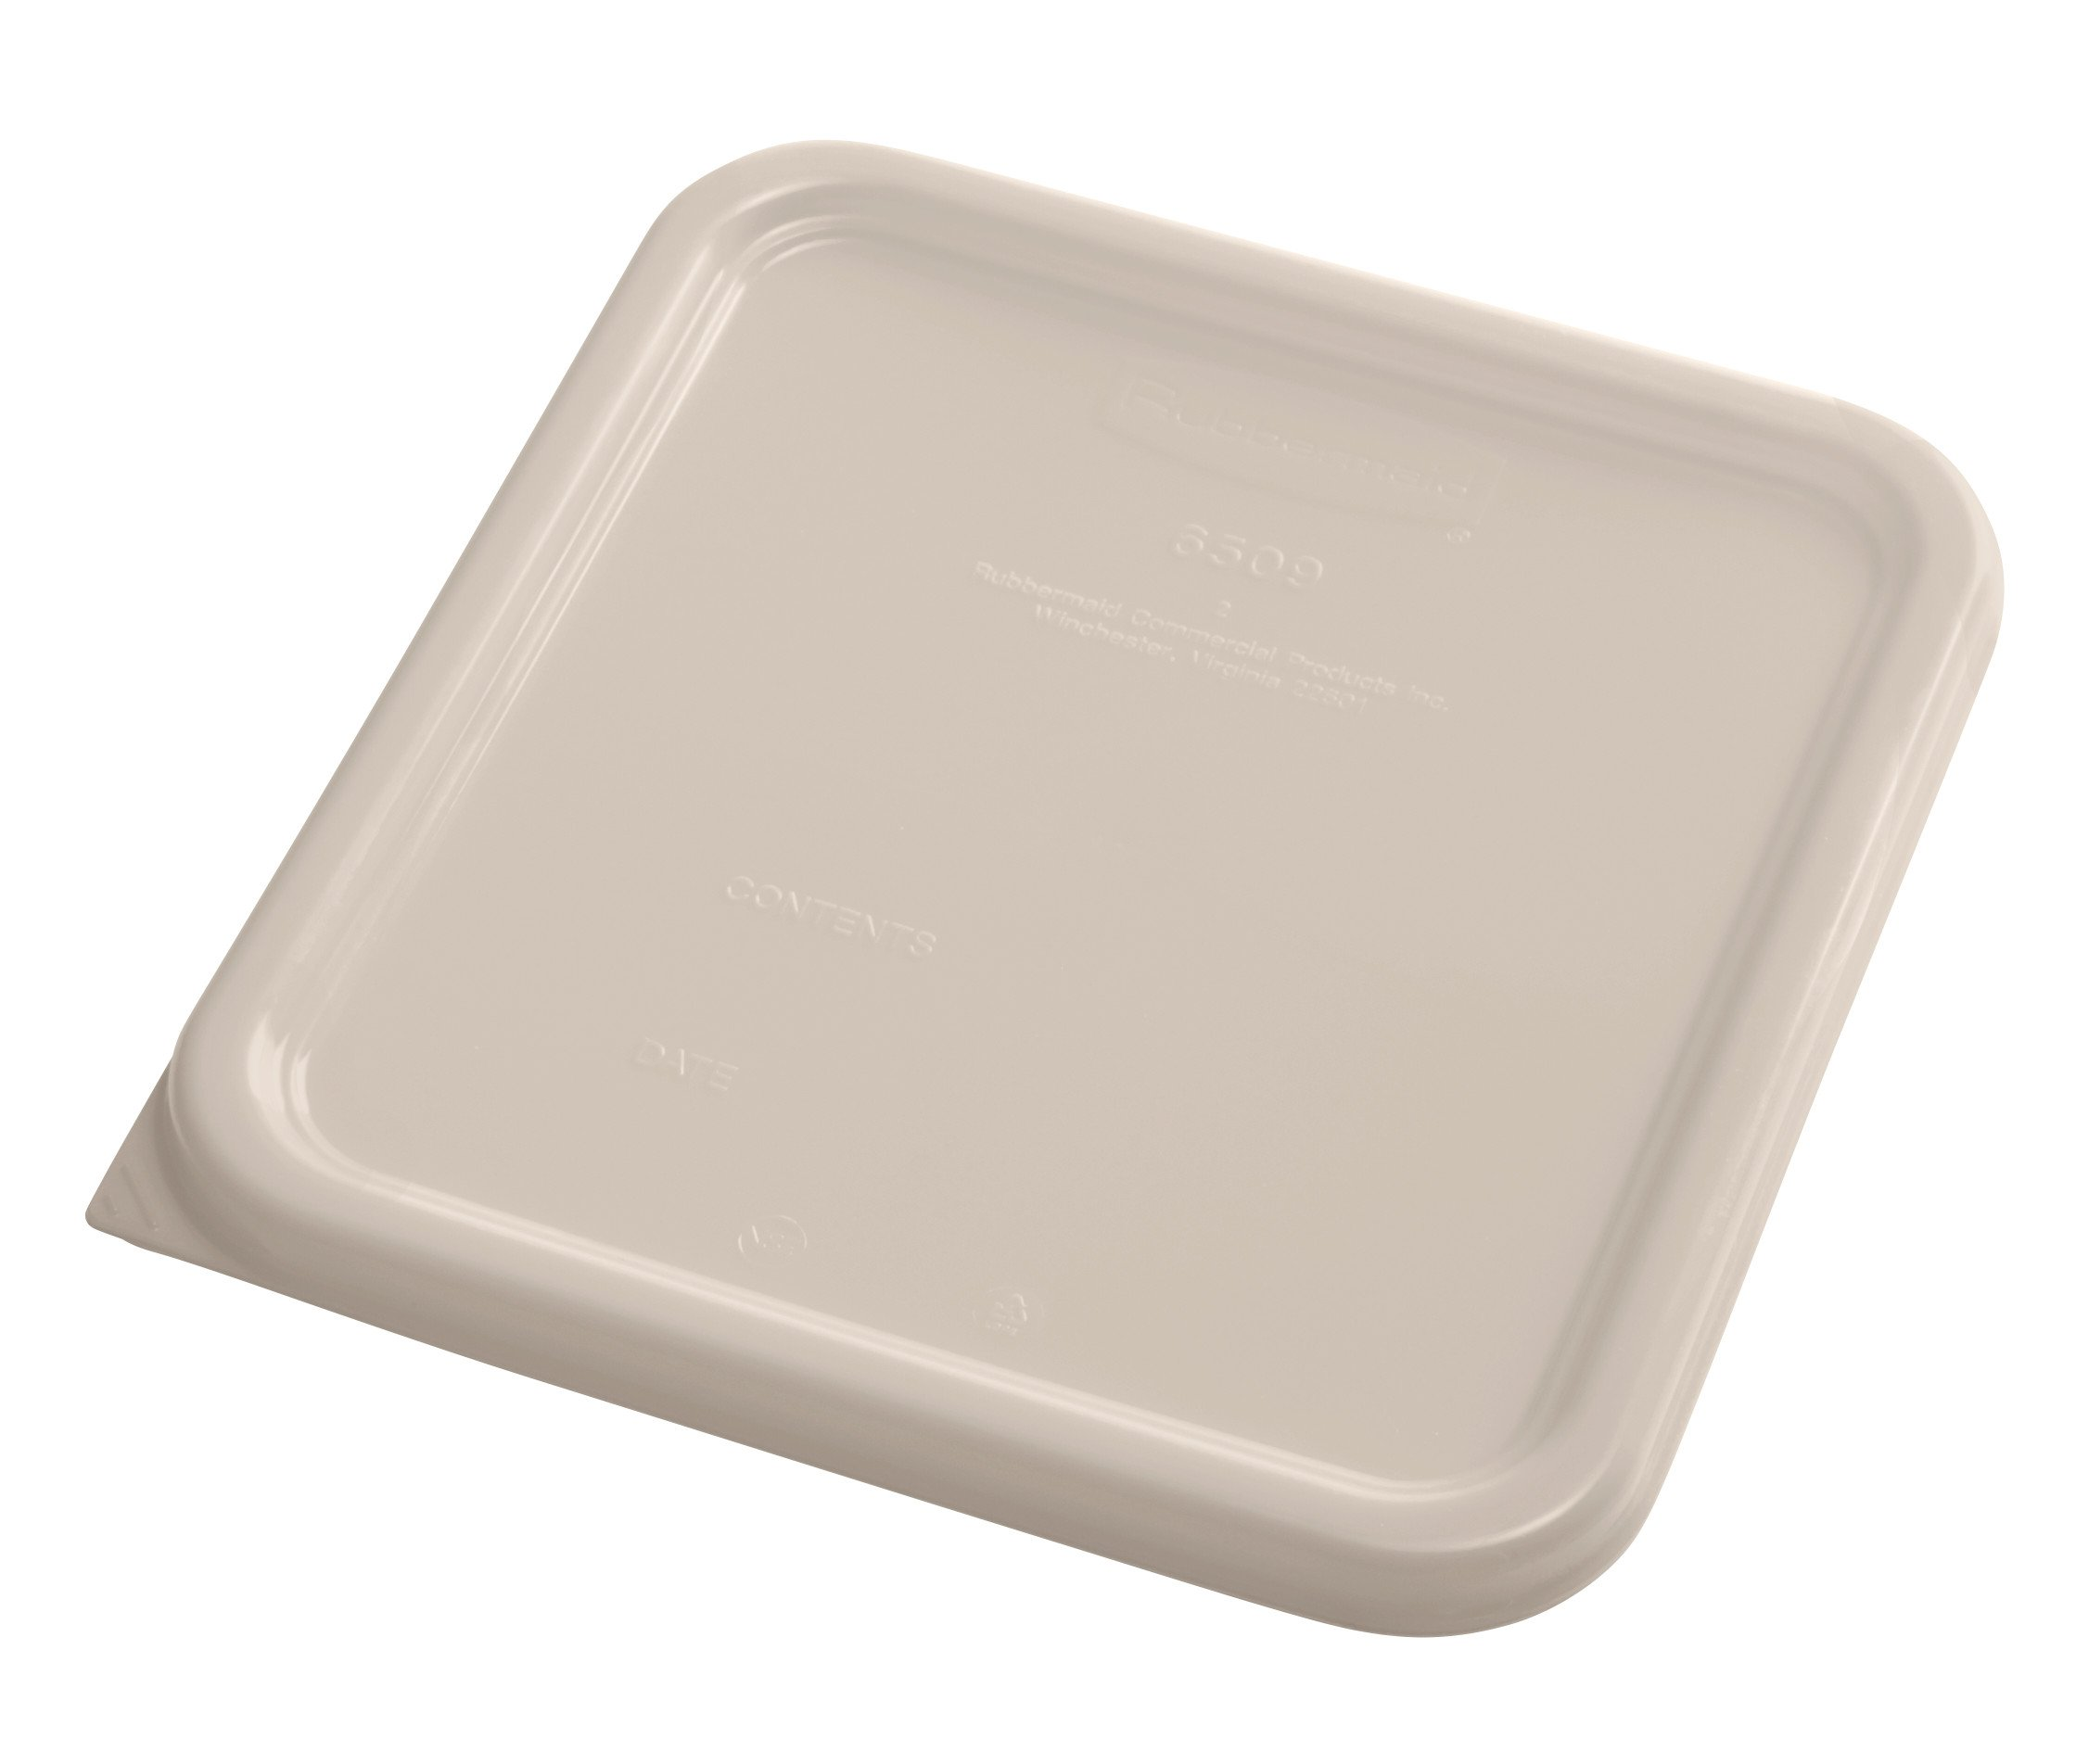 Rubbermaid Commercial Products 1980305 Rubbermaid Commercial Plastic Food Storage Container Lid, Square, Brown, 4 and 8 Quart by Rubbermaid Commercial Products